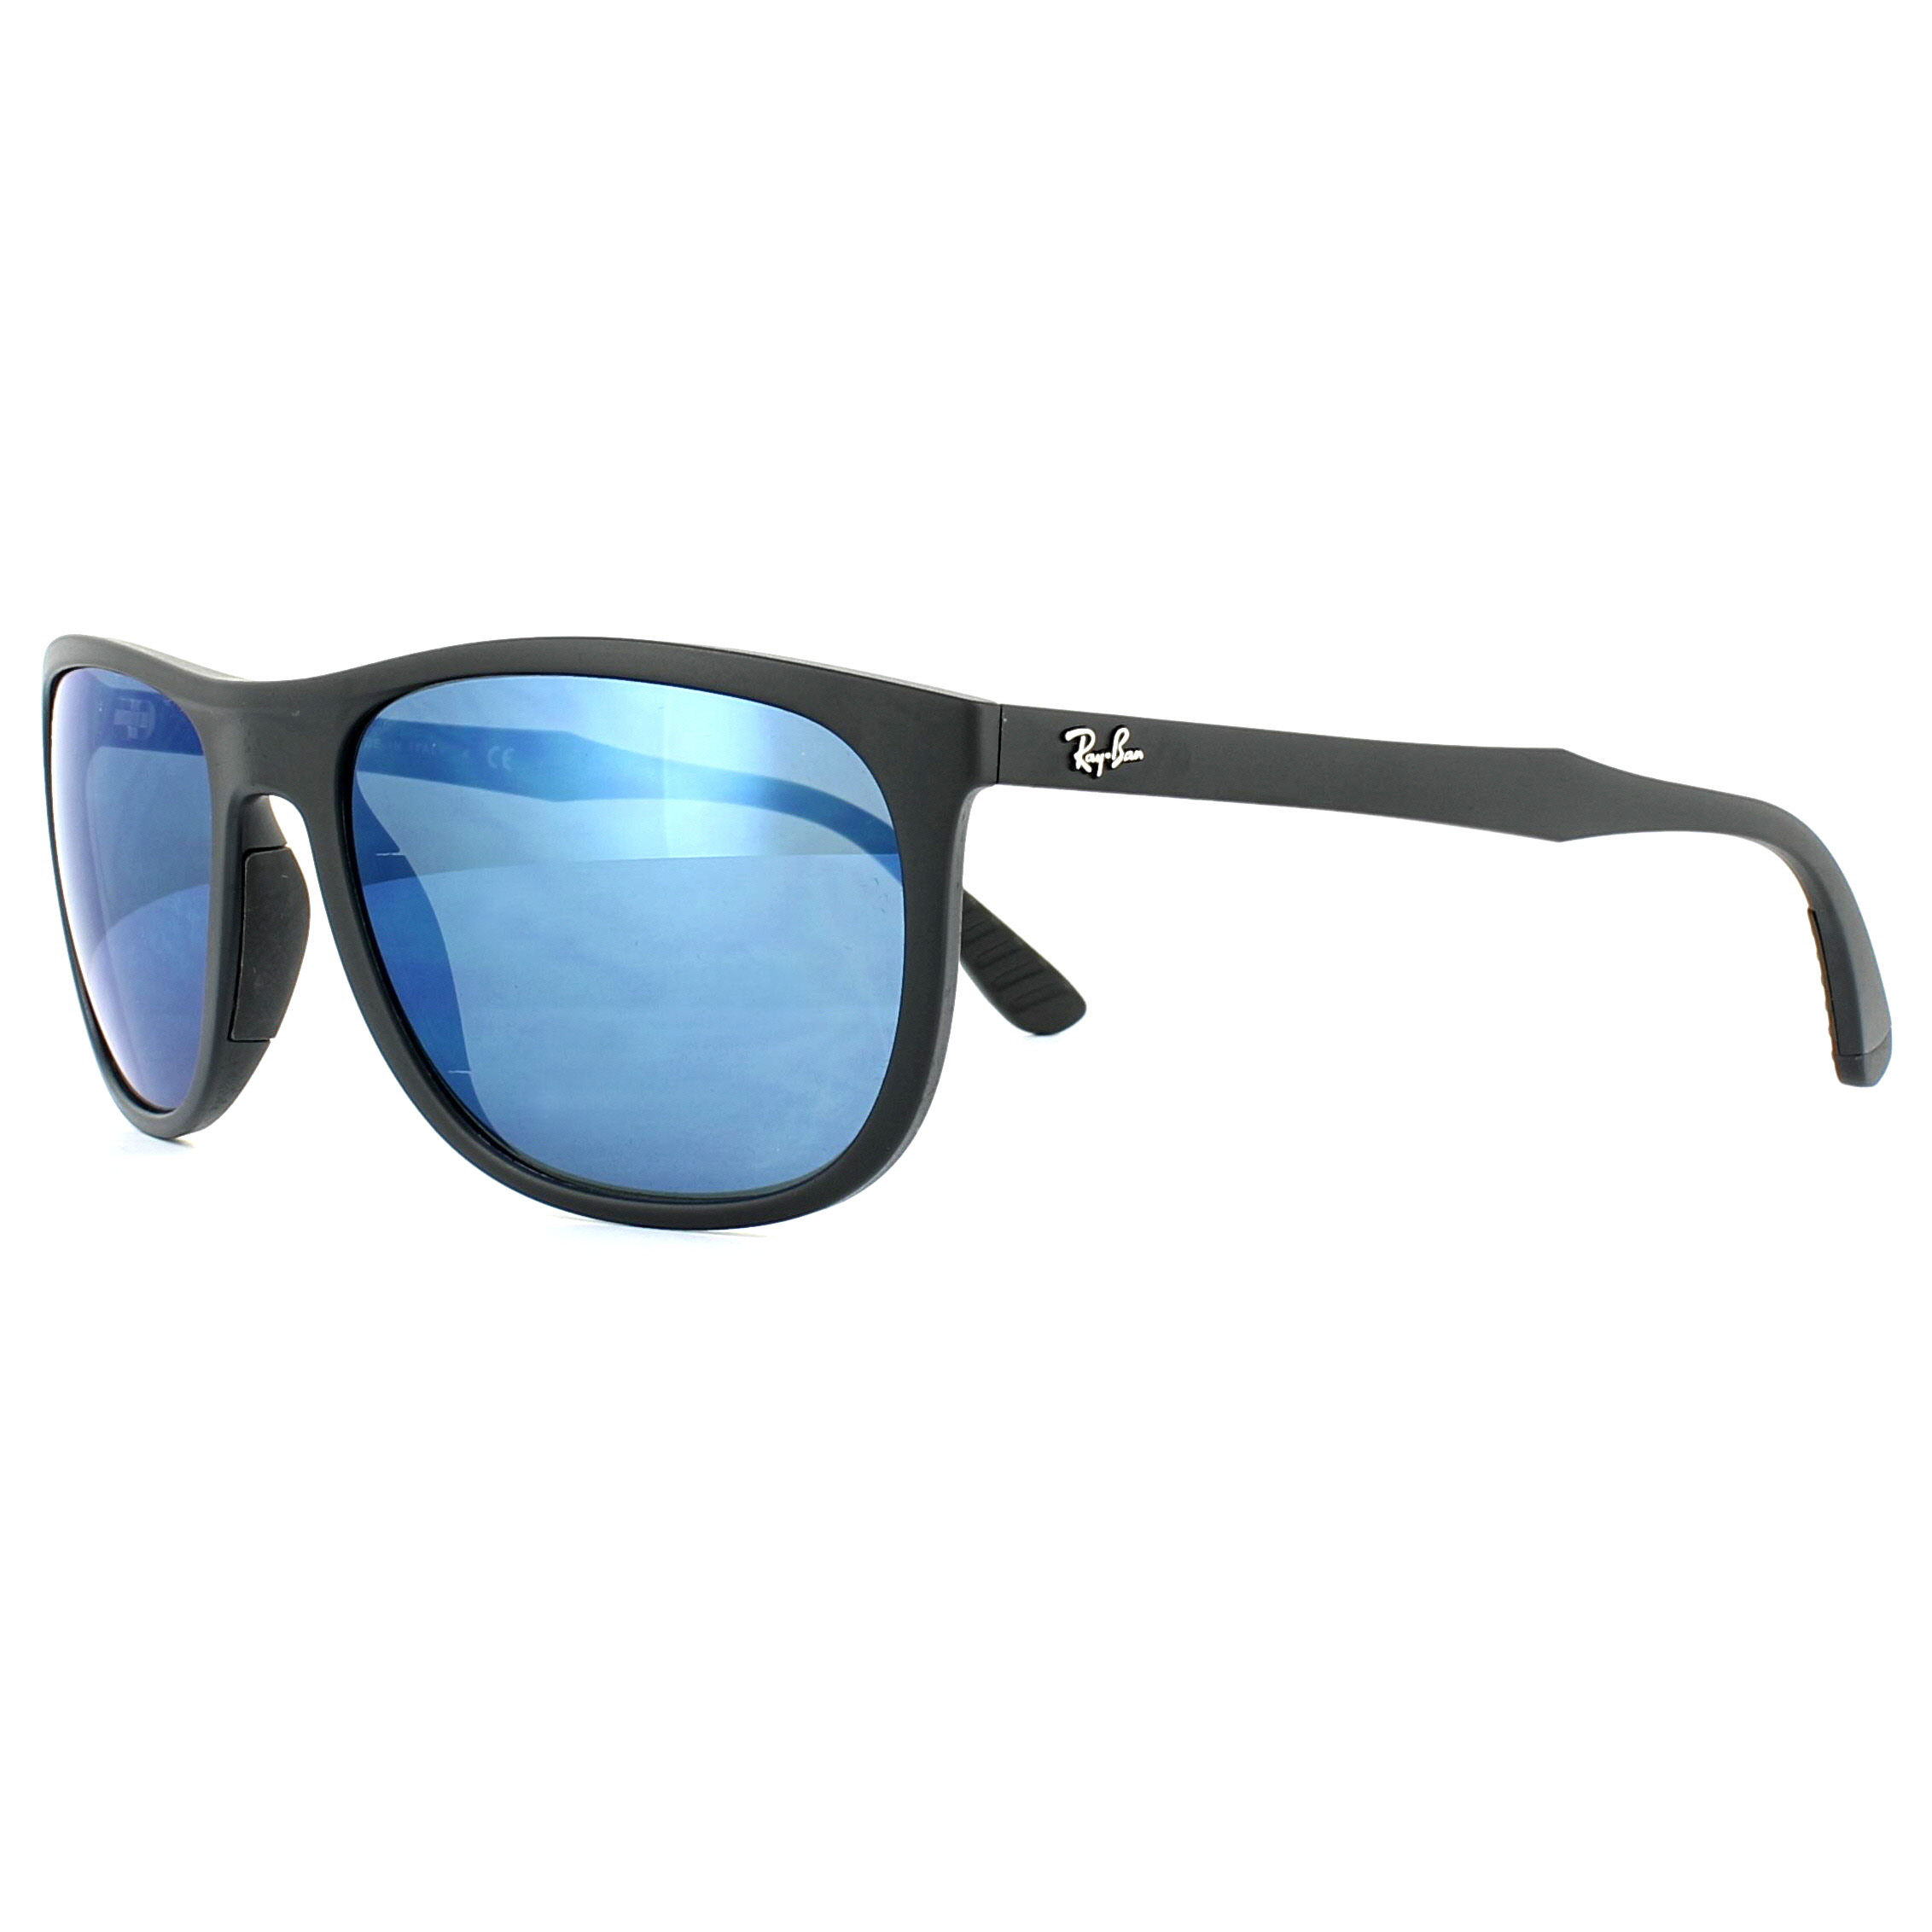 d32394a8df Sentinel Ray-Ban Sunglasses RB4291 601S55 Black Blue Mirror